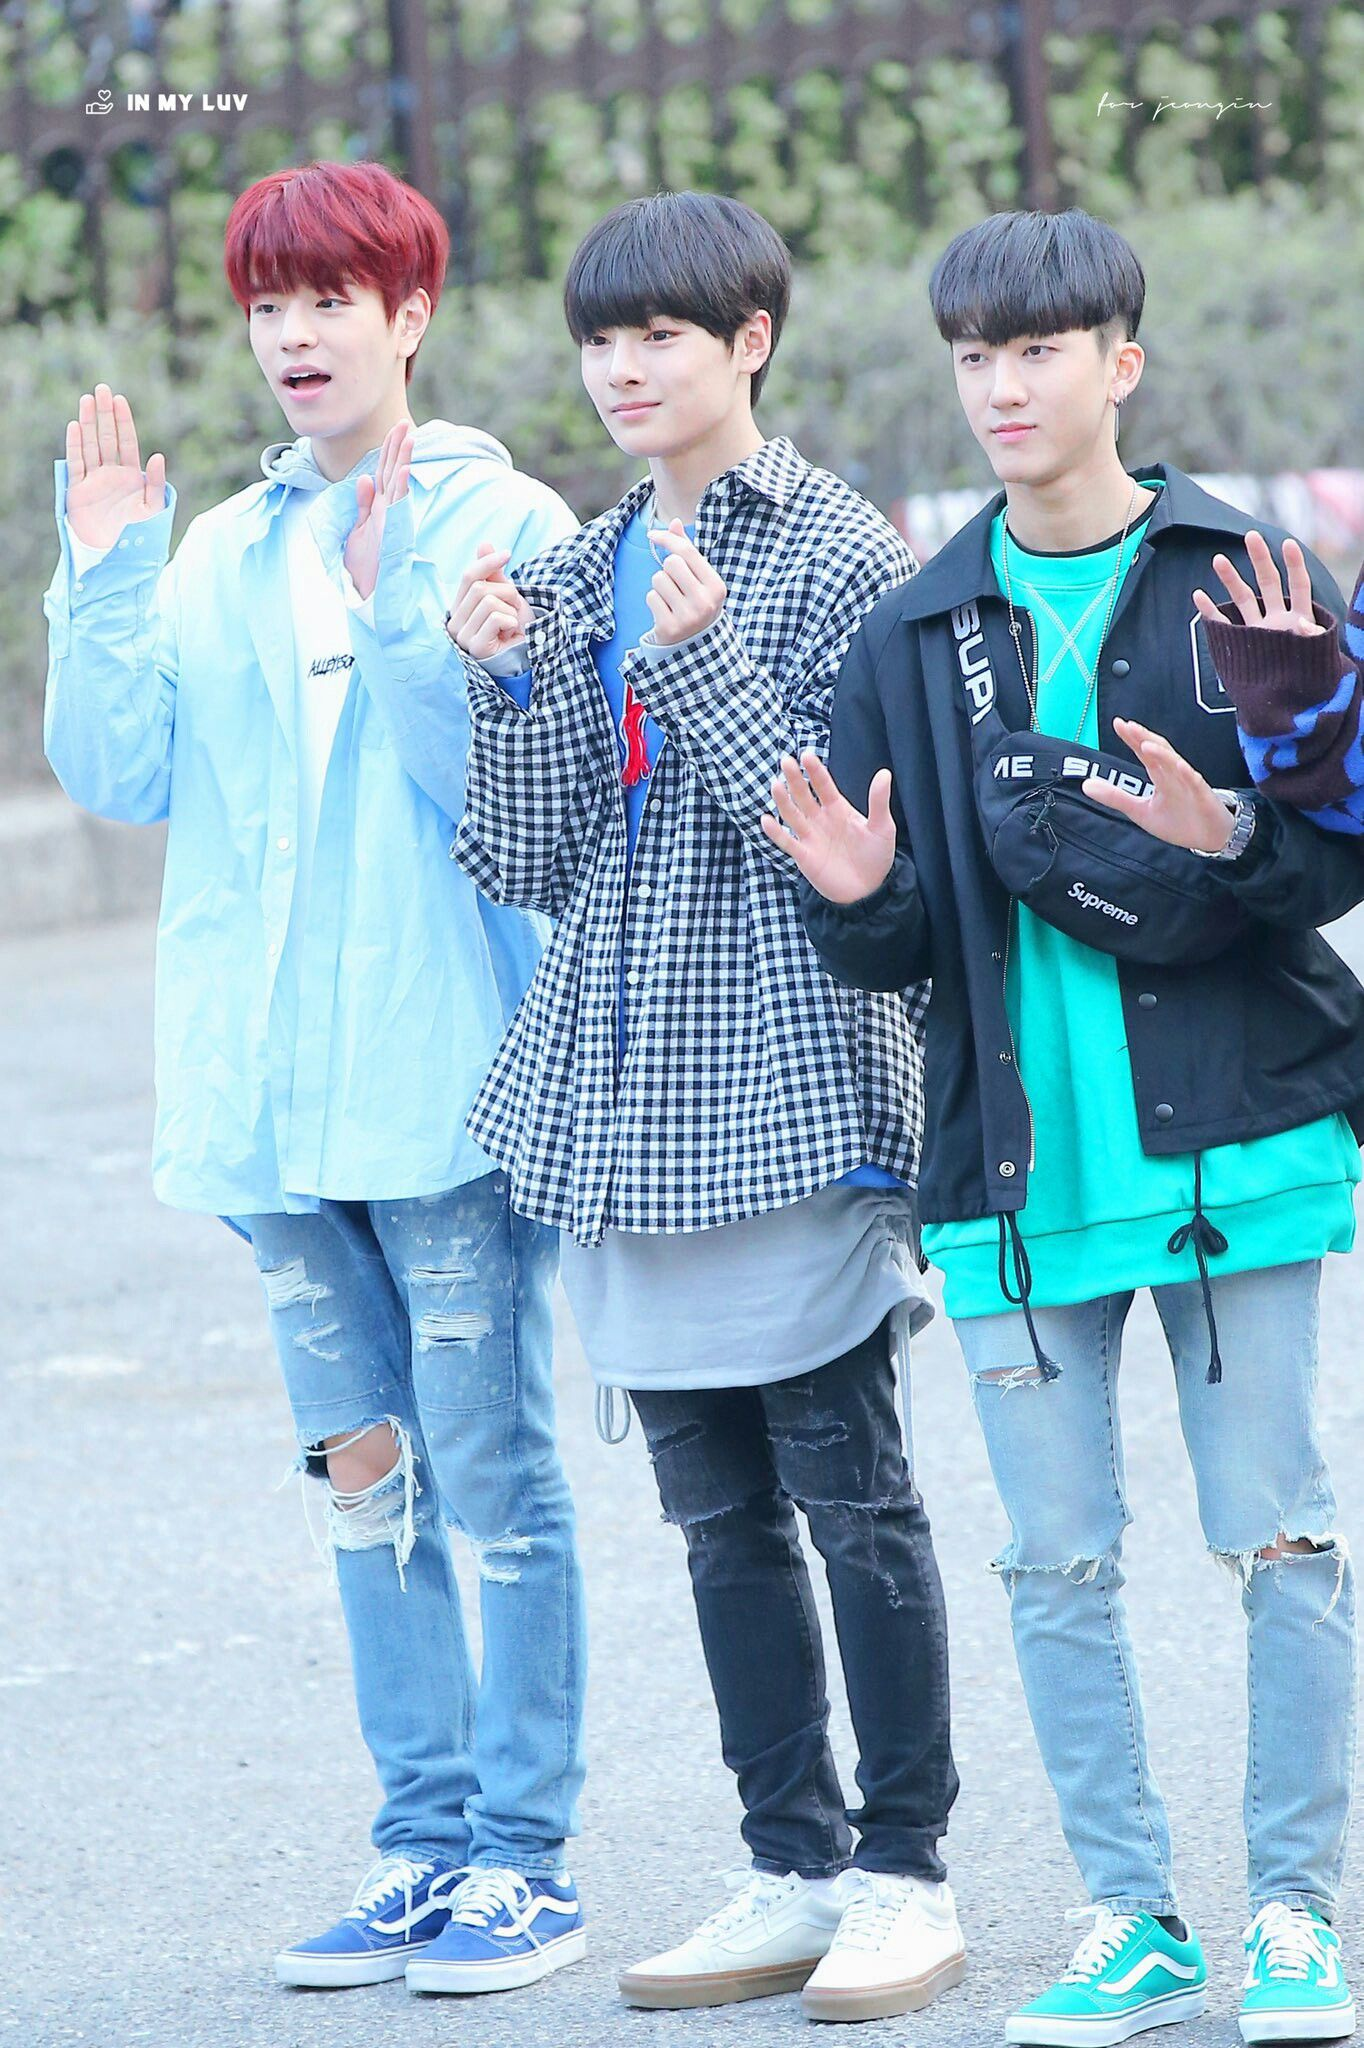 Seungmin Jeongin And Changbin Stray Kids Stray Kids Seungmin Rapper Outfits Kpop Rappers